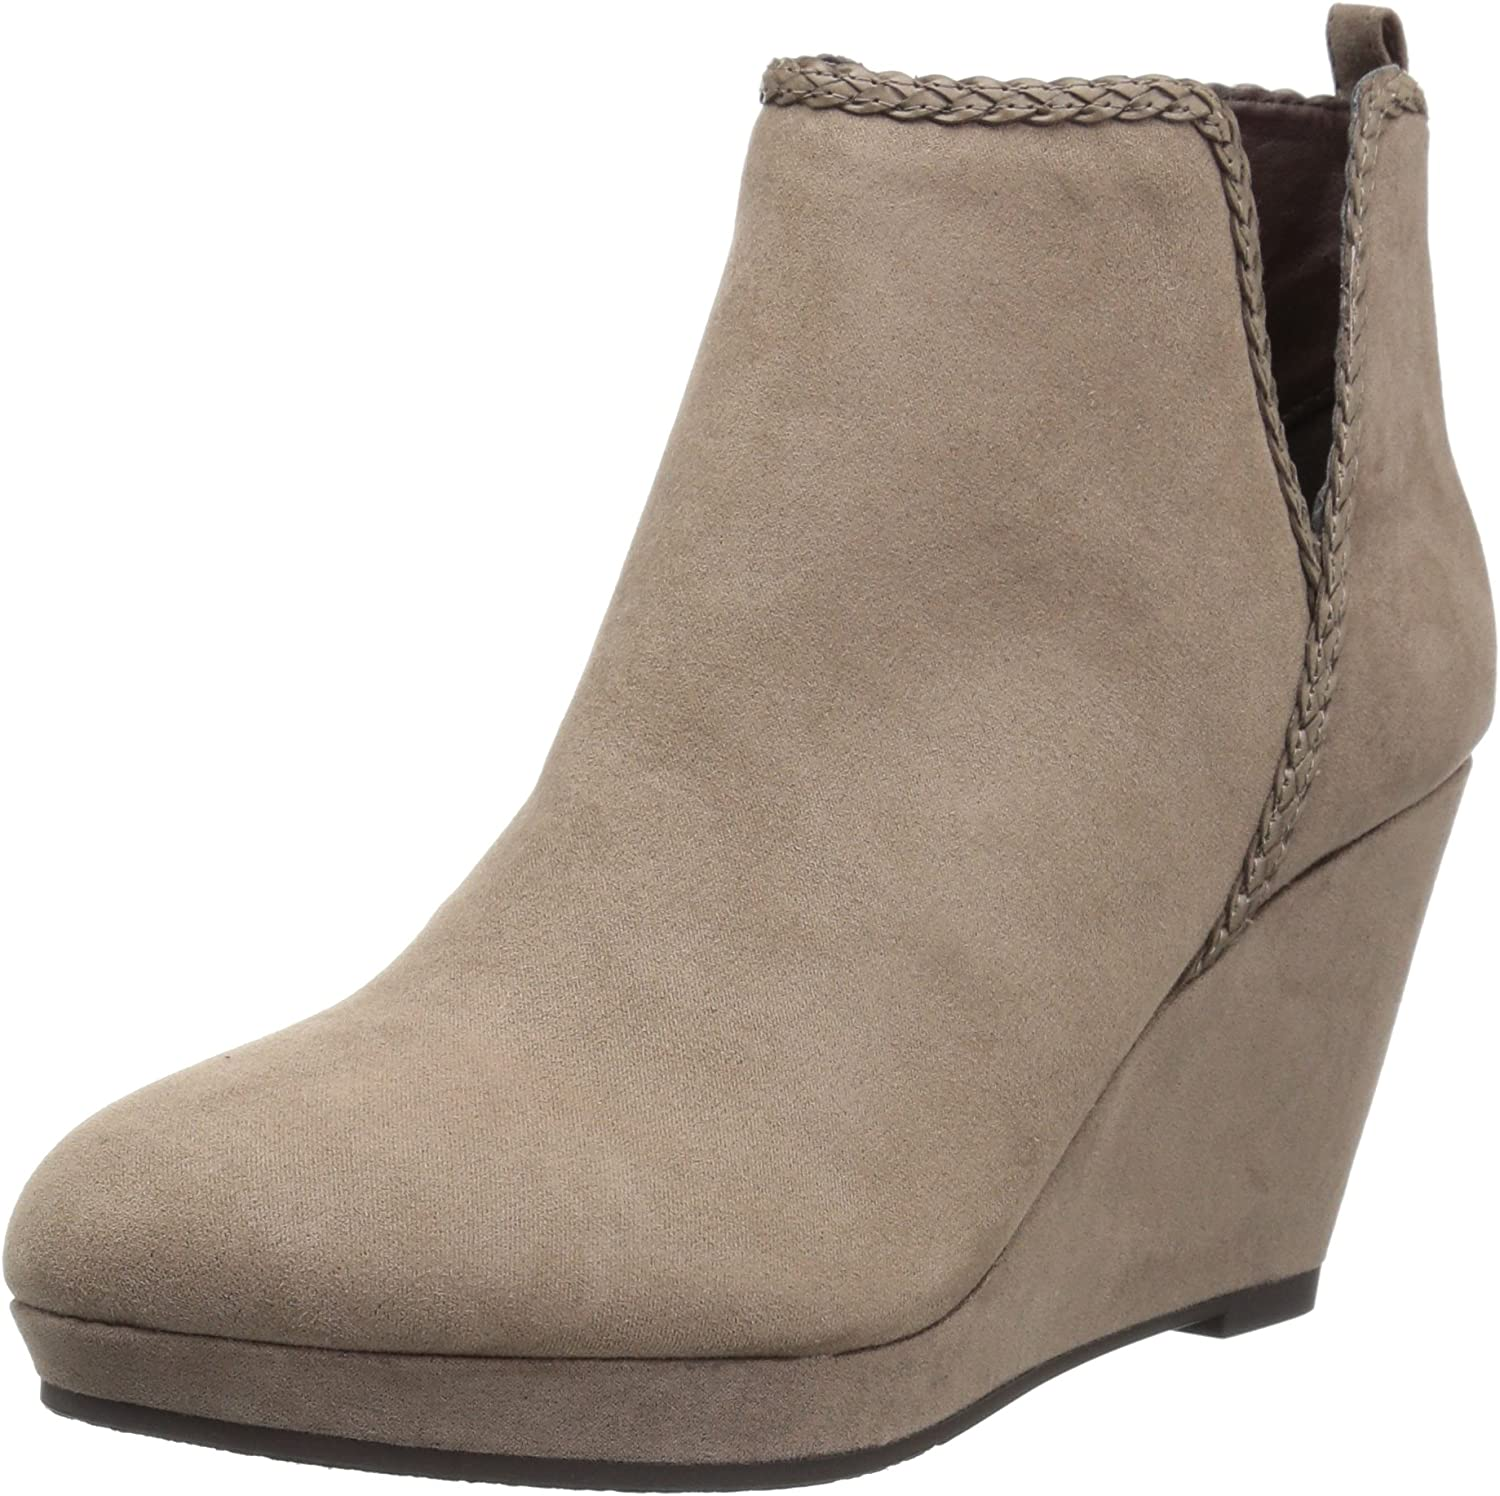 CL by Chinese Laundry Women's Volcano Ankle Bootie